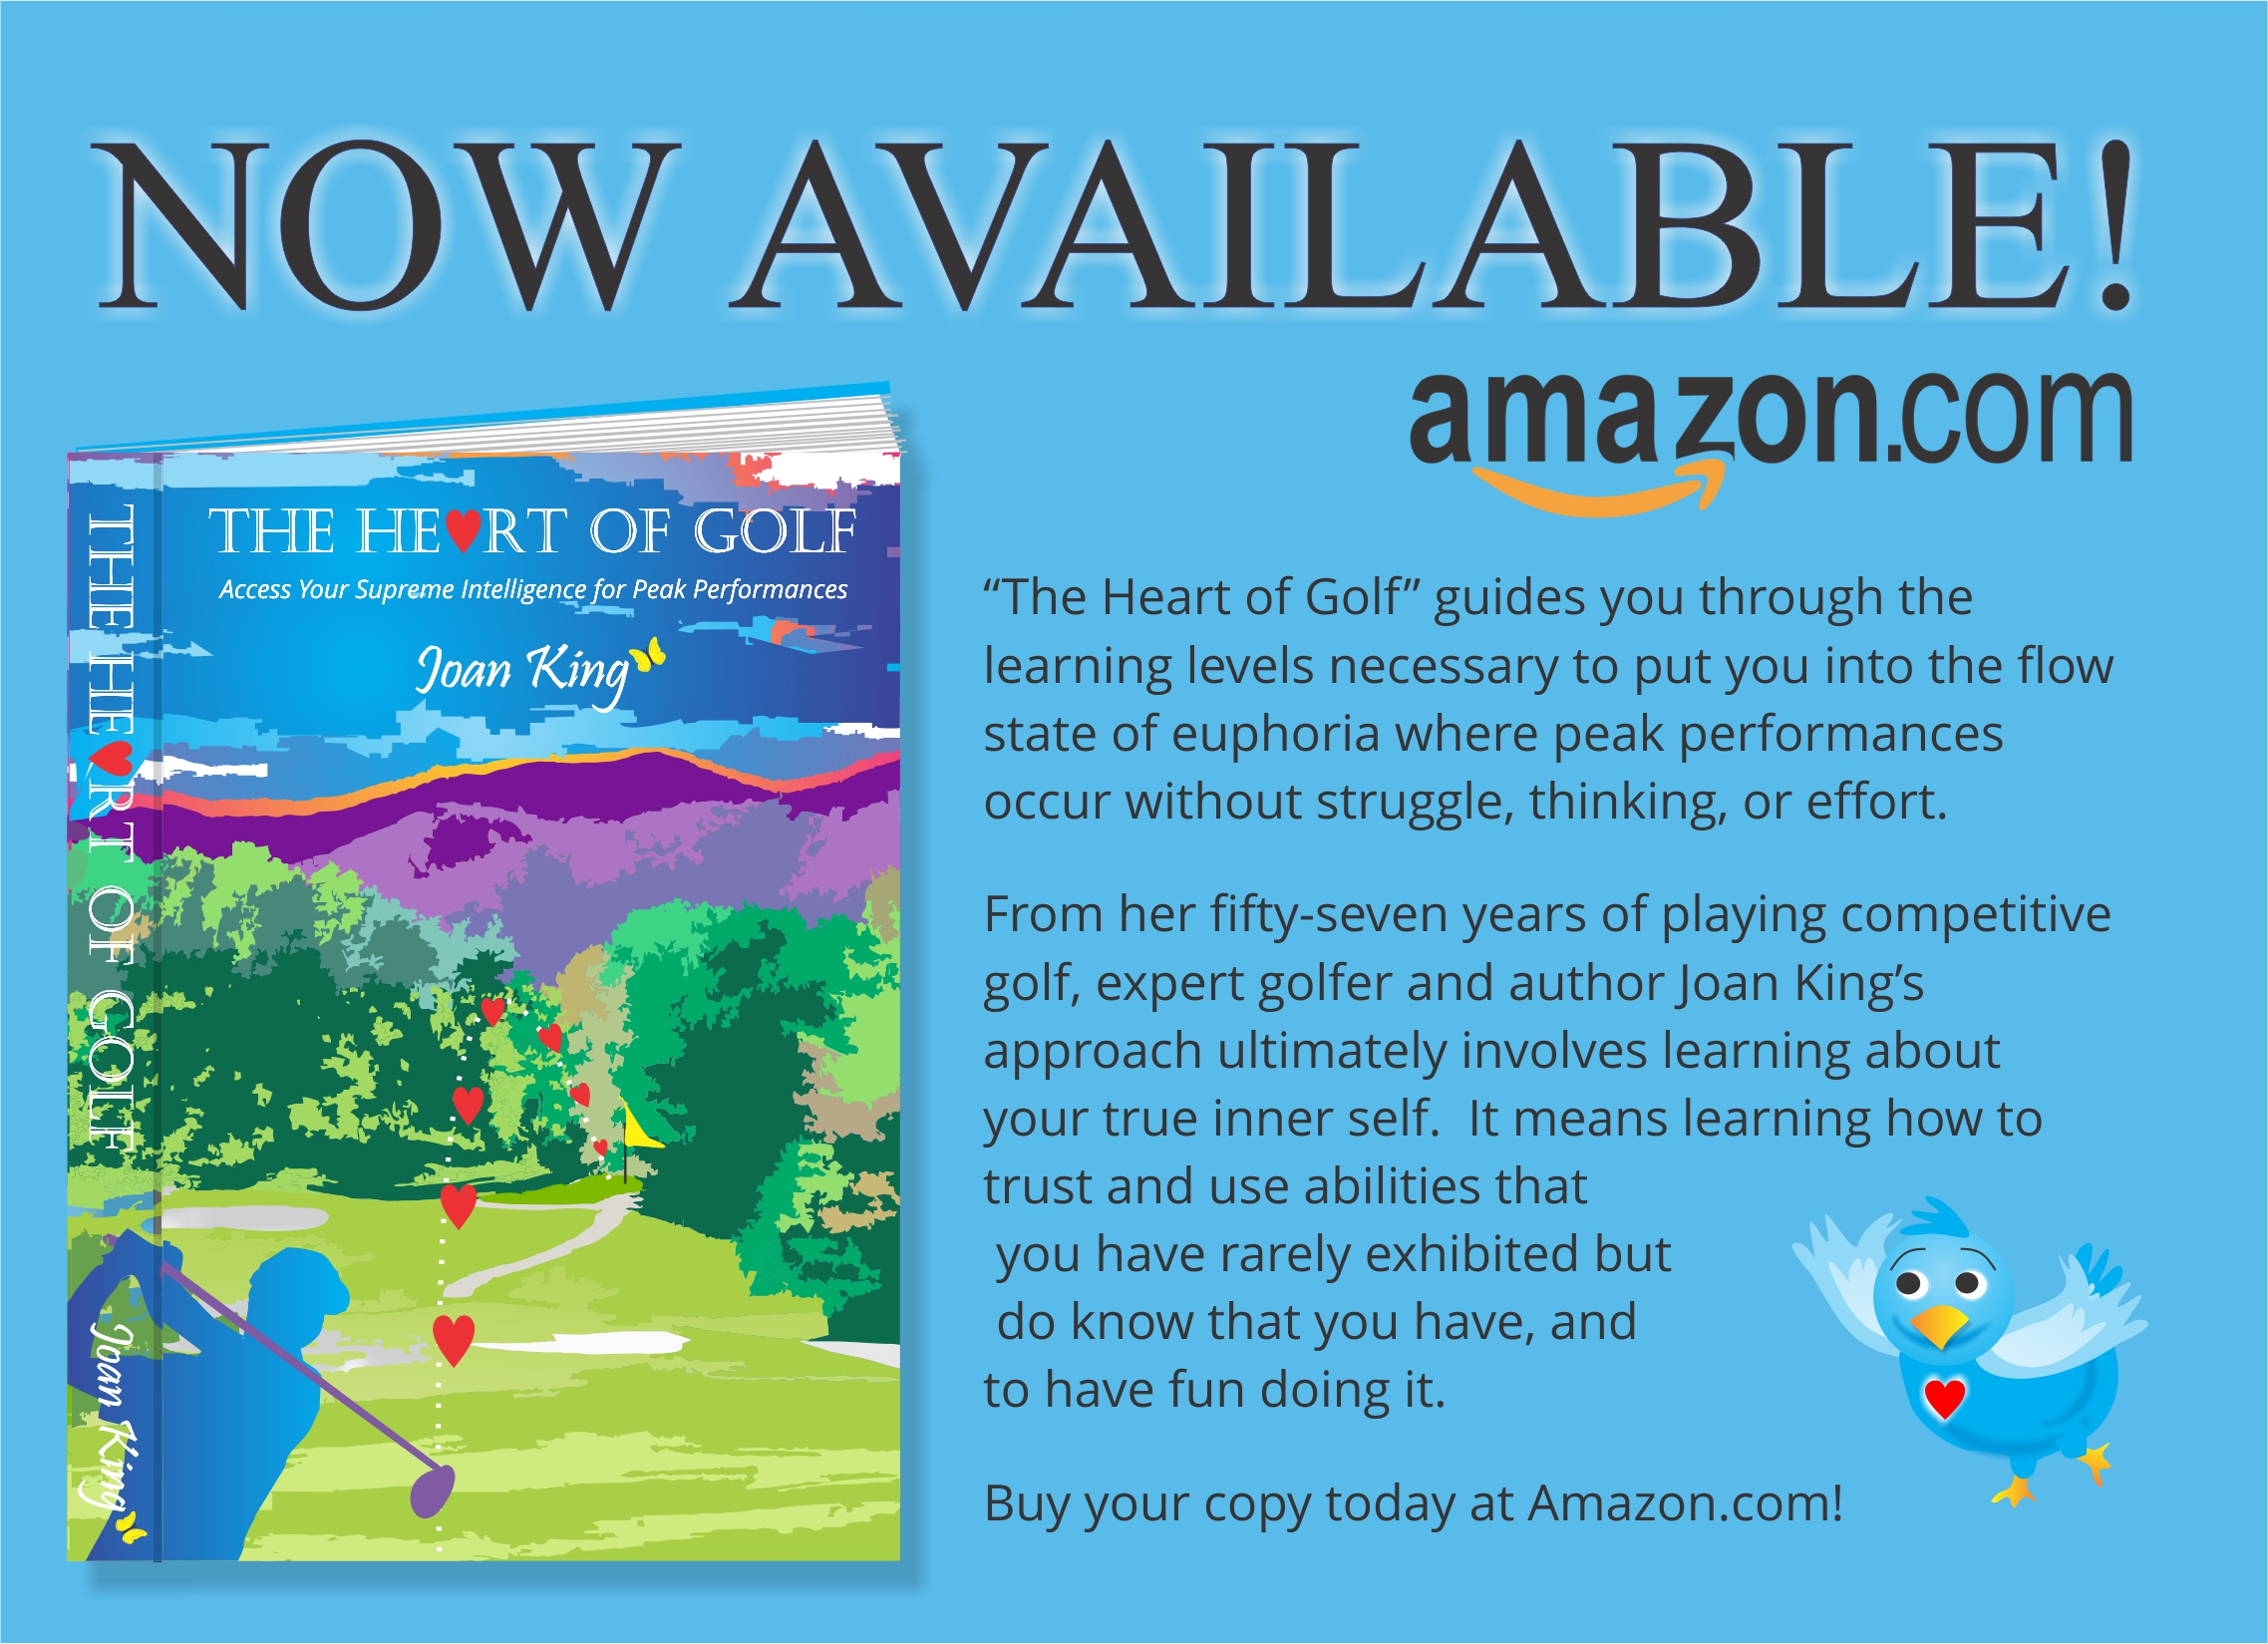 THE HEART OF GOLF